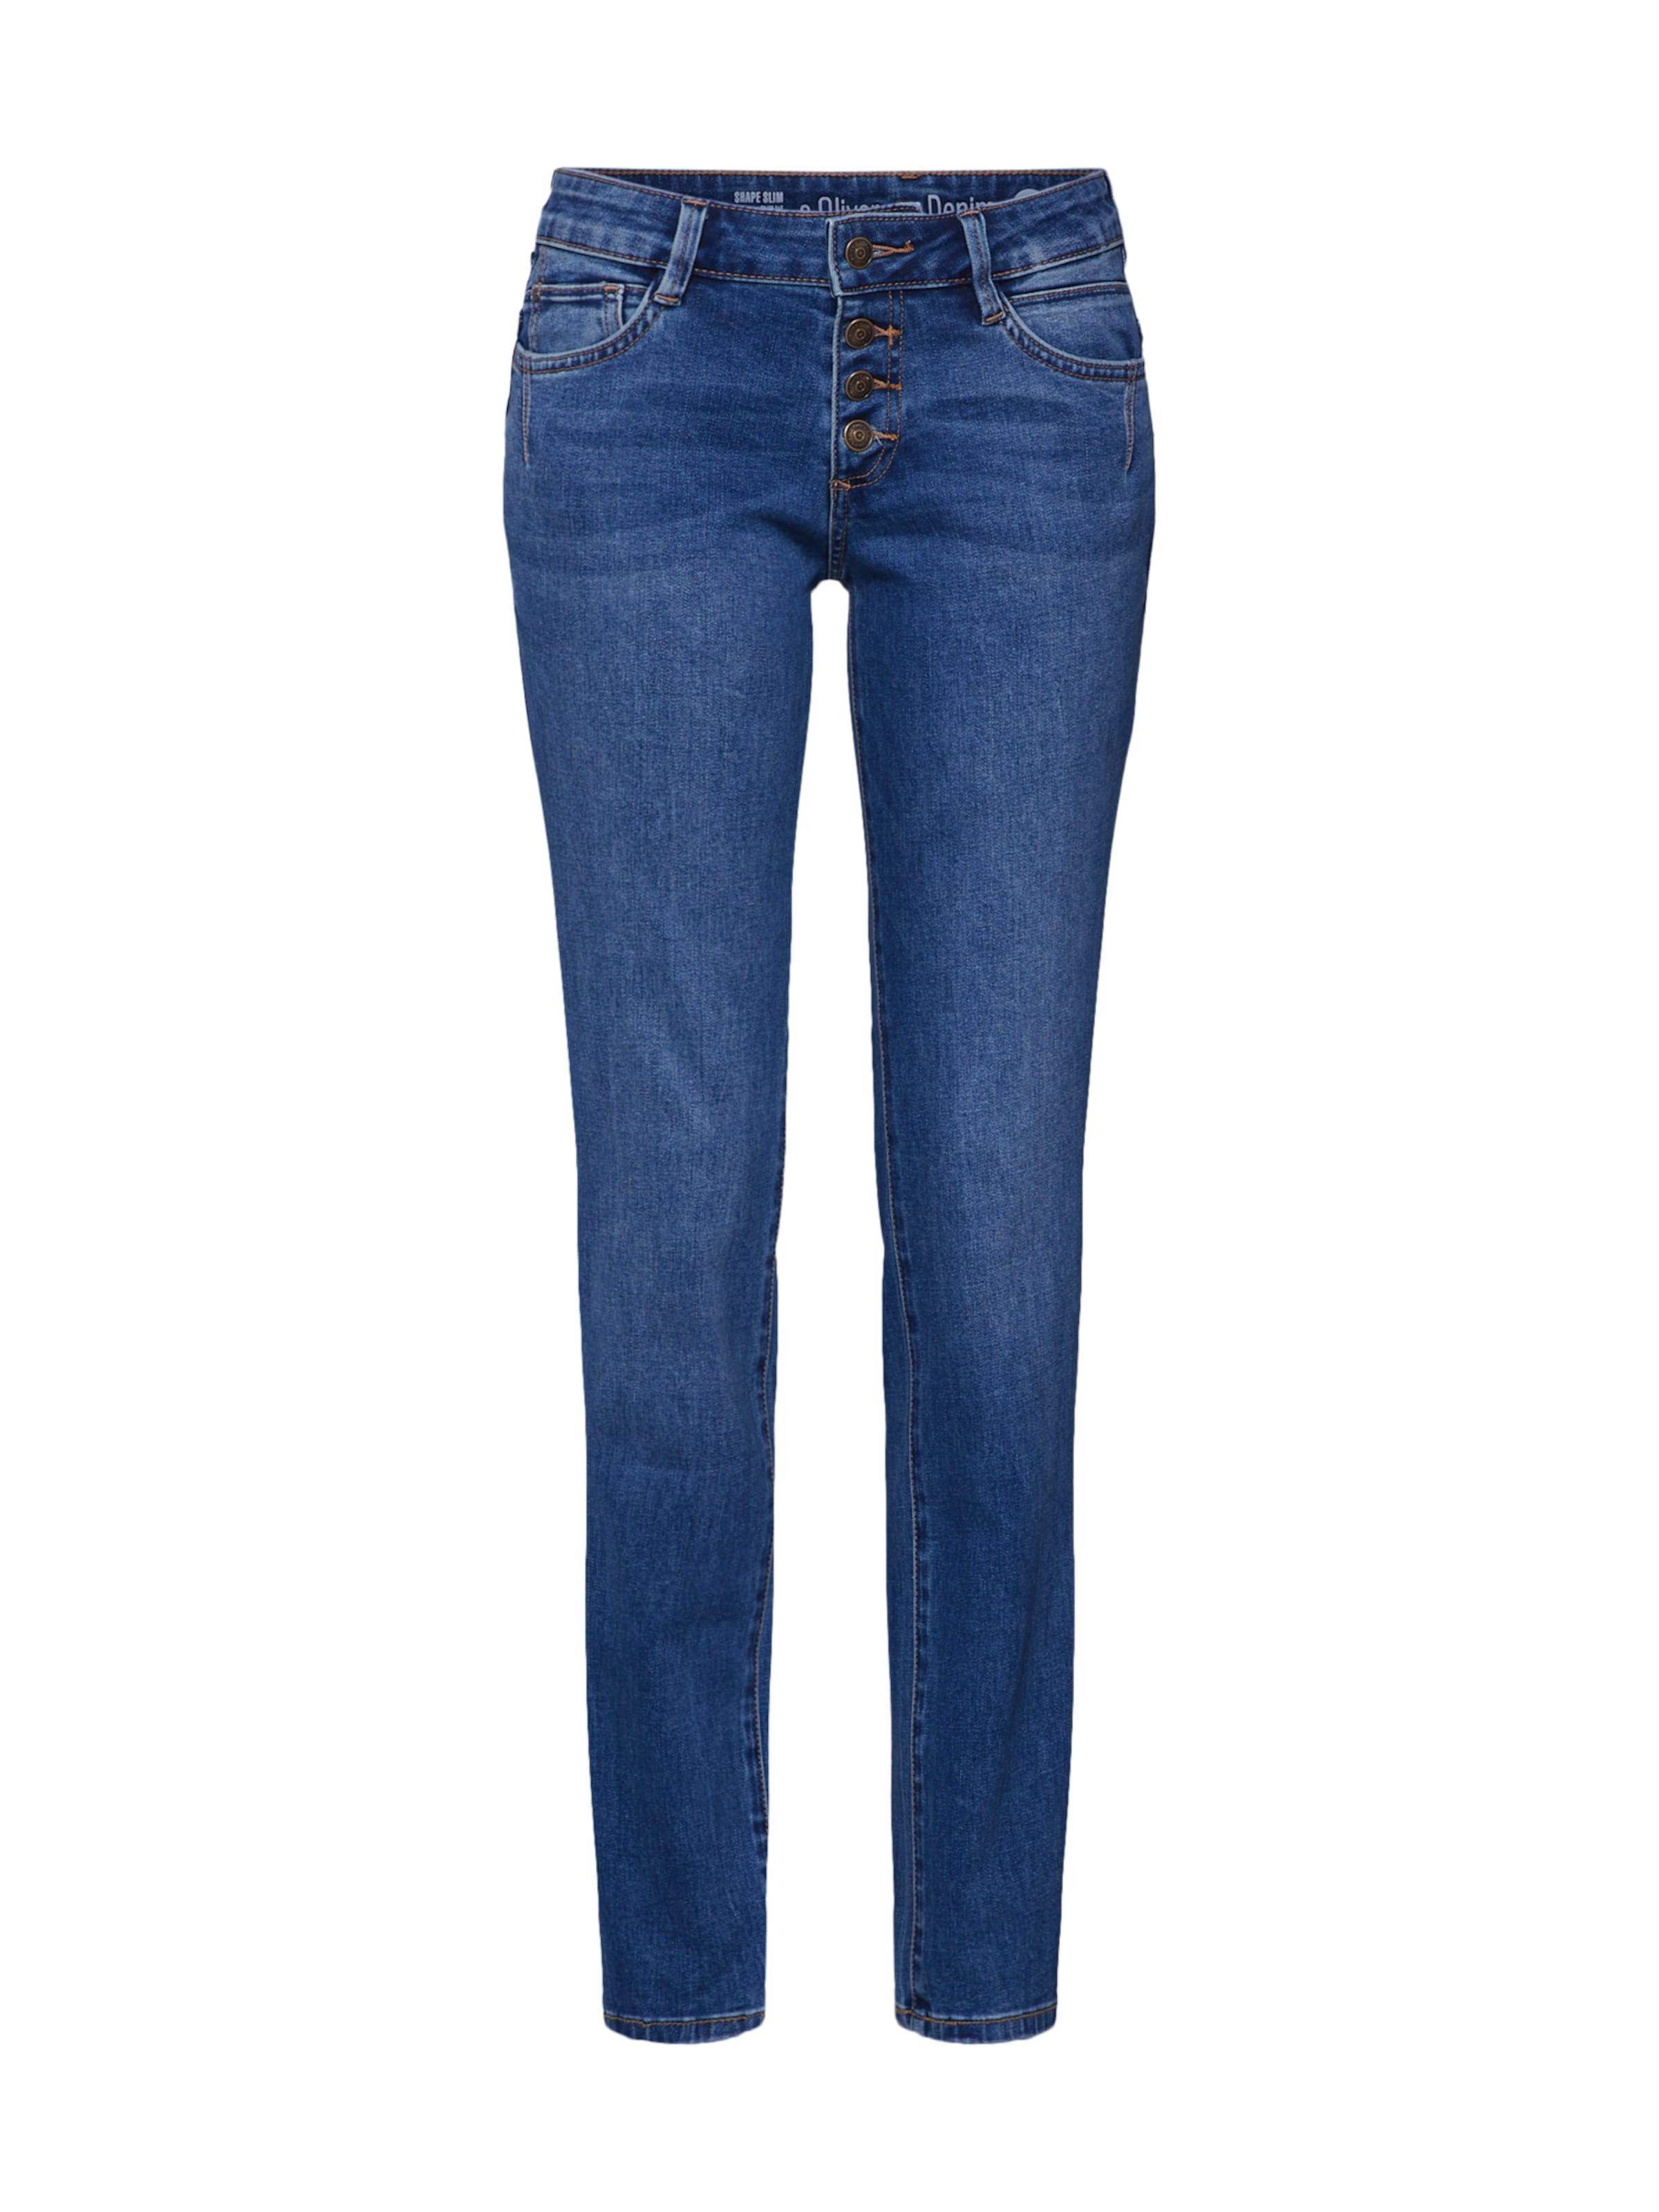 Blue S In oliver Red Label Jeans Denim Lc5q3AS4Rj